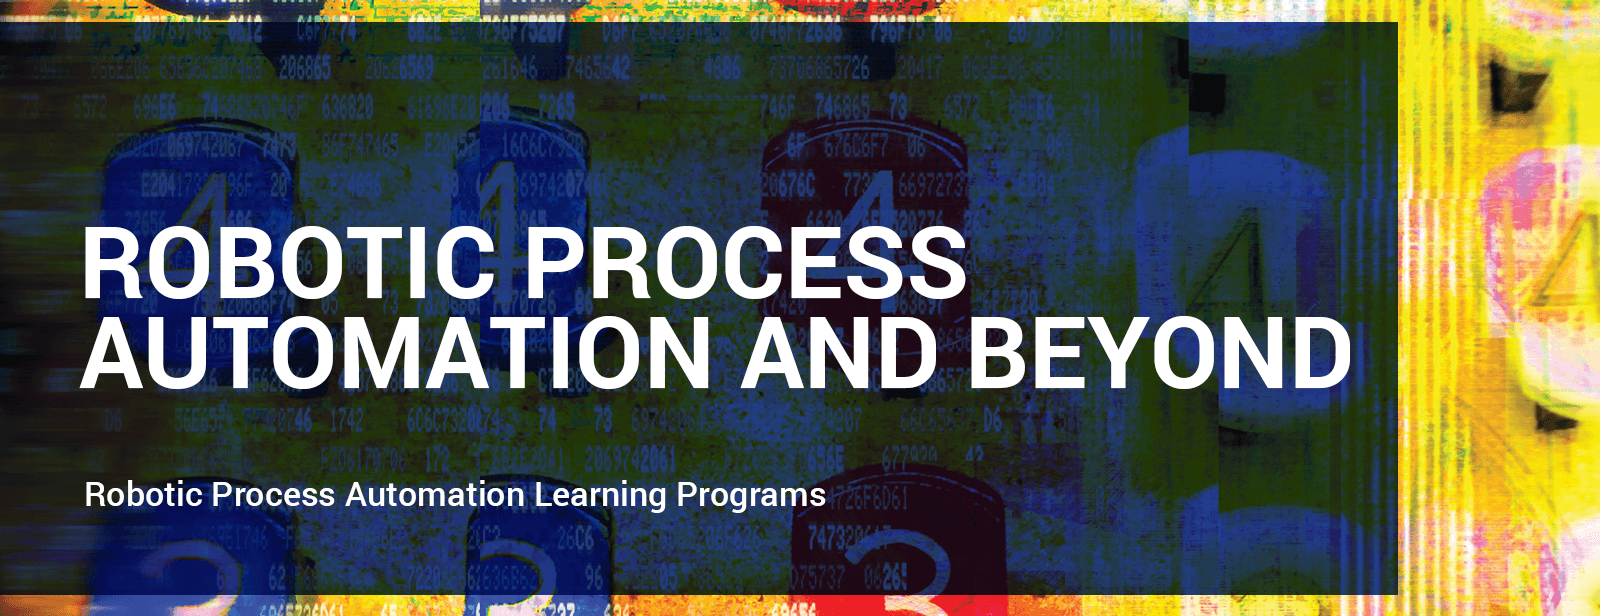 Robotic Process Automation Learning Programs   AICPA